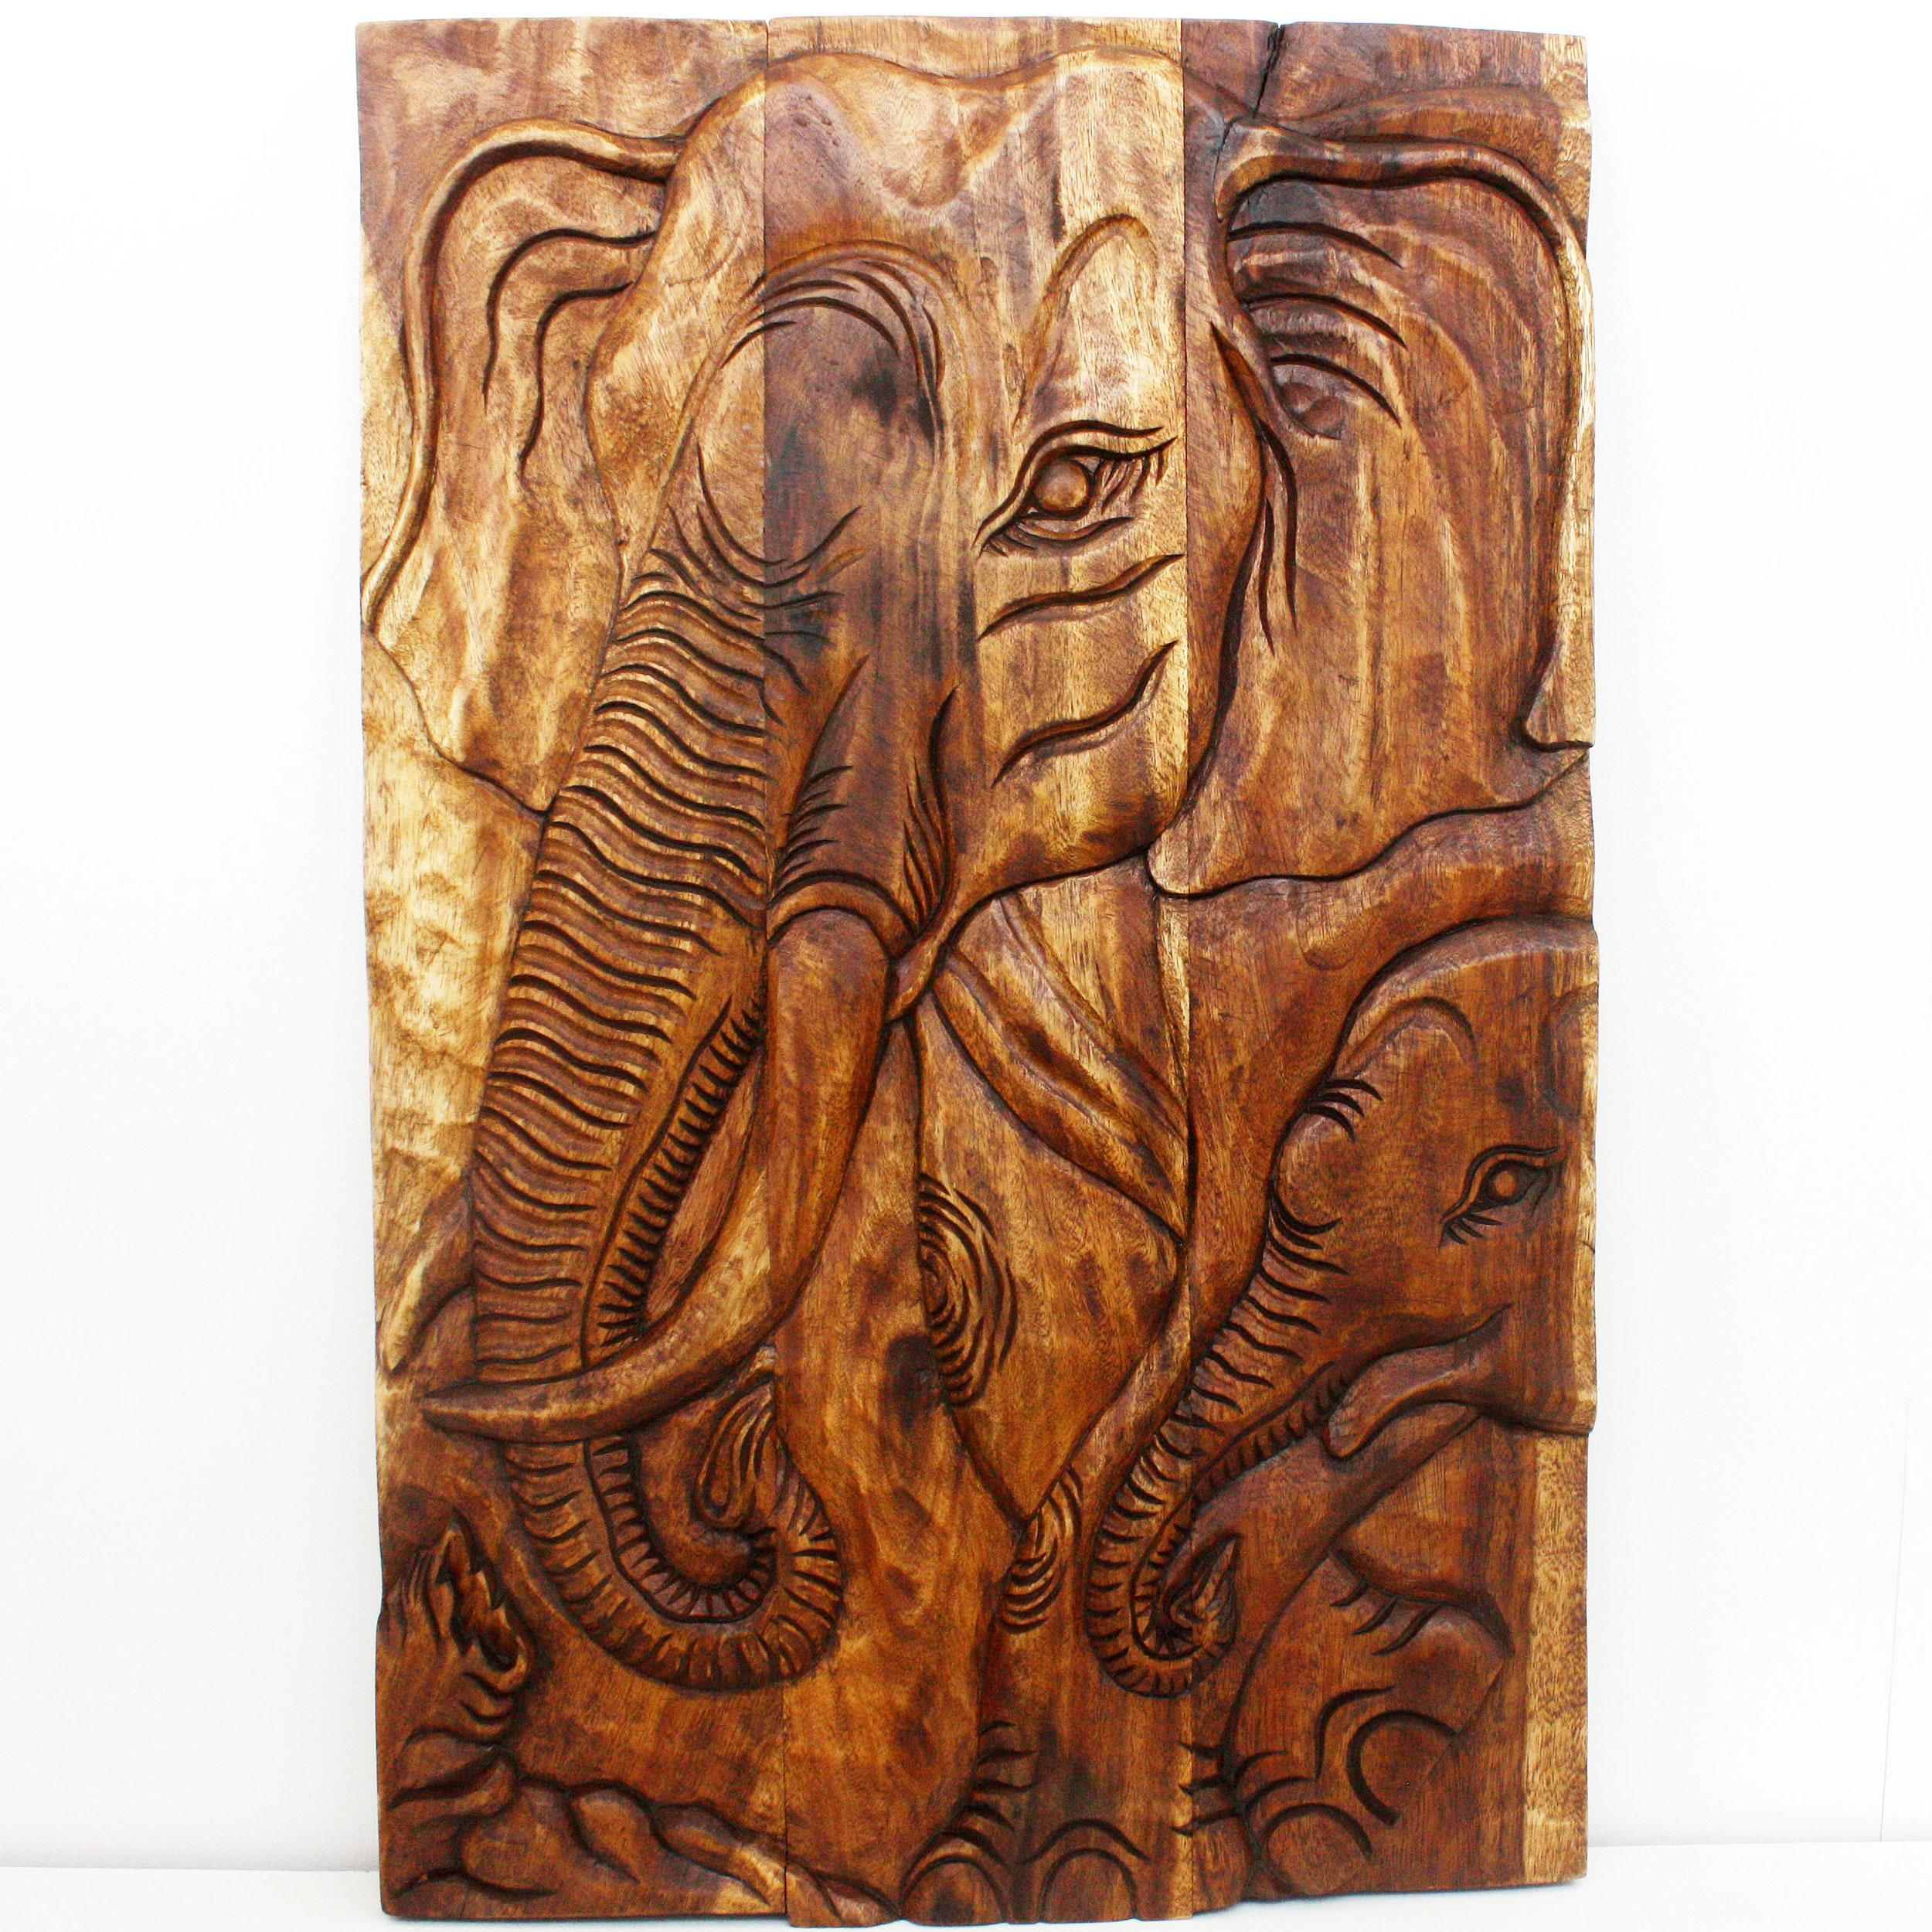 Wall Decor Thailand Wood Art Panels Nature Carvings Pertaining To Wood Carved Wall Art Panels (Image 16 of 20)